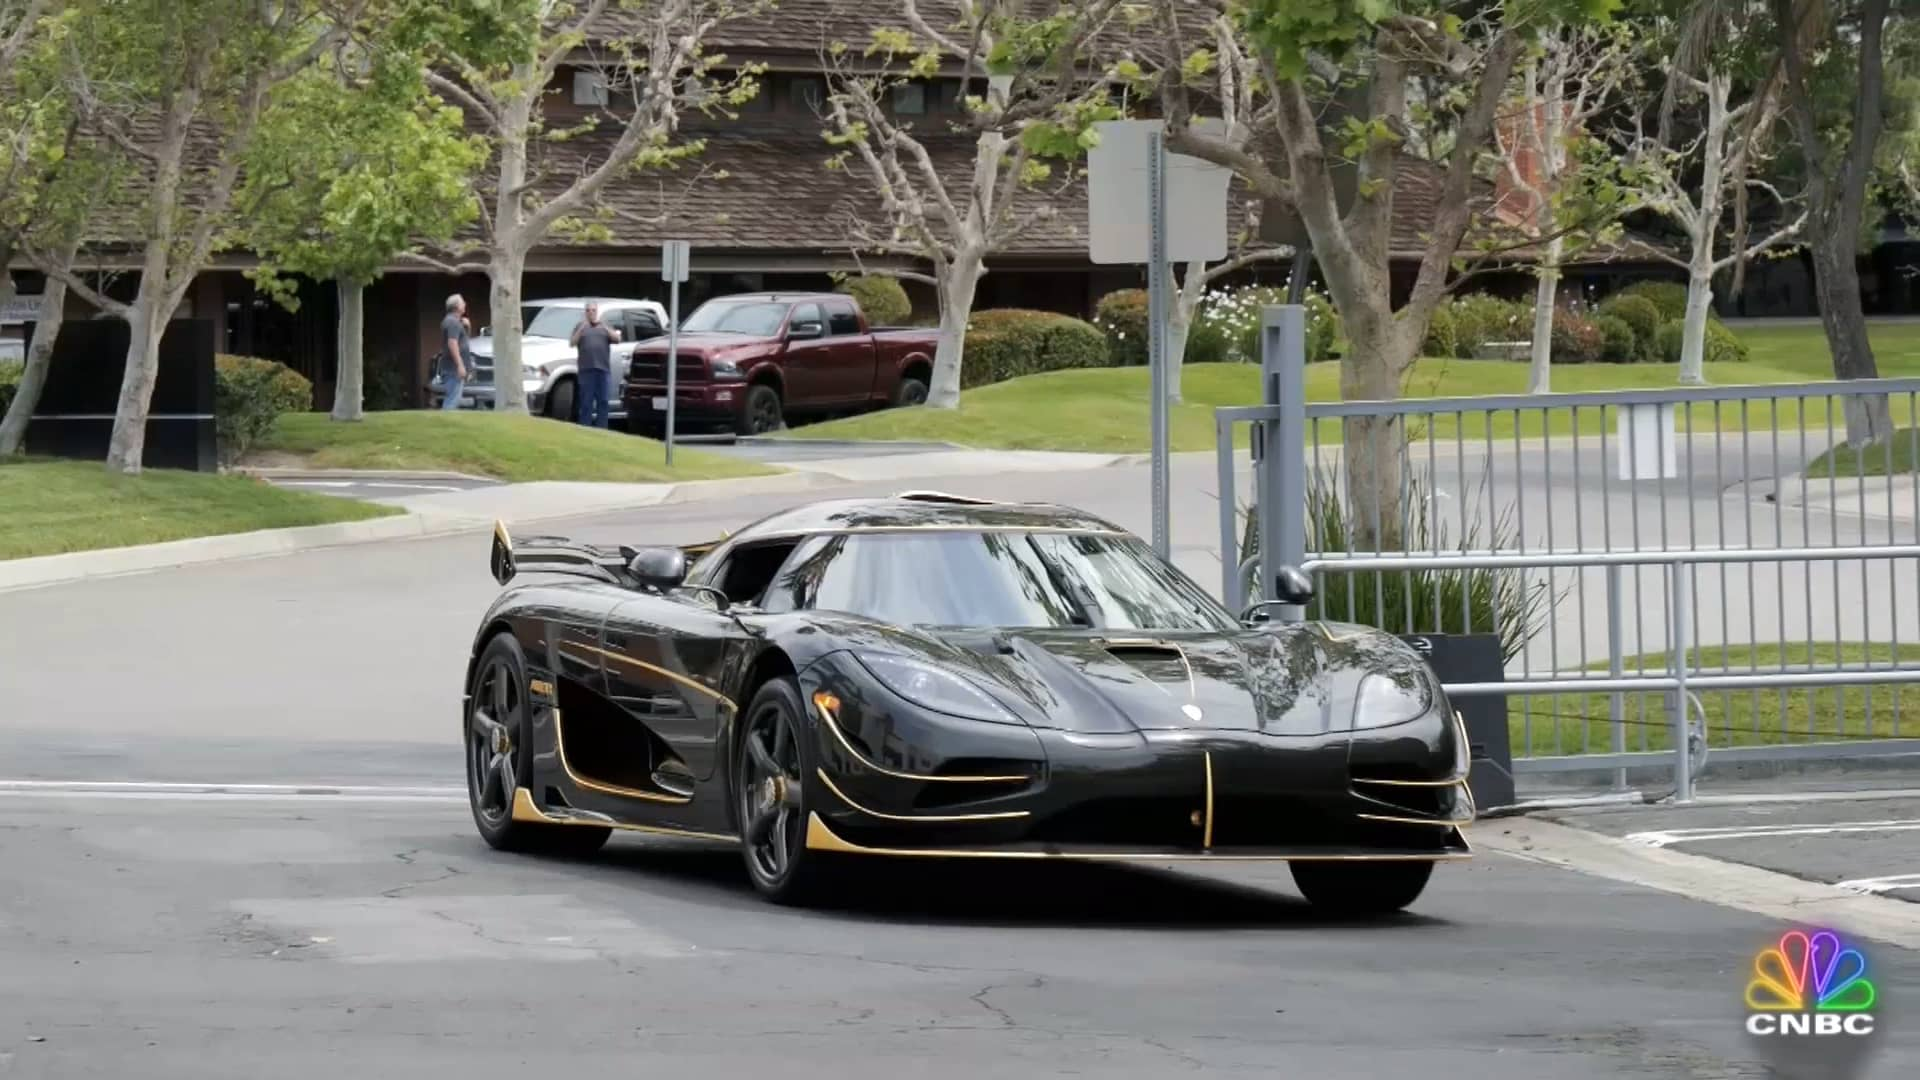 Photos: Fastest production car Koenigsegg Agera RS costs